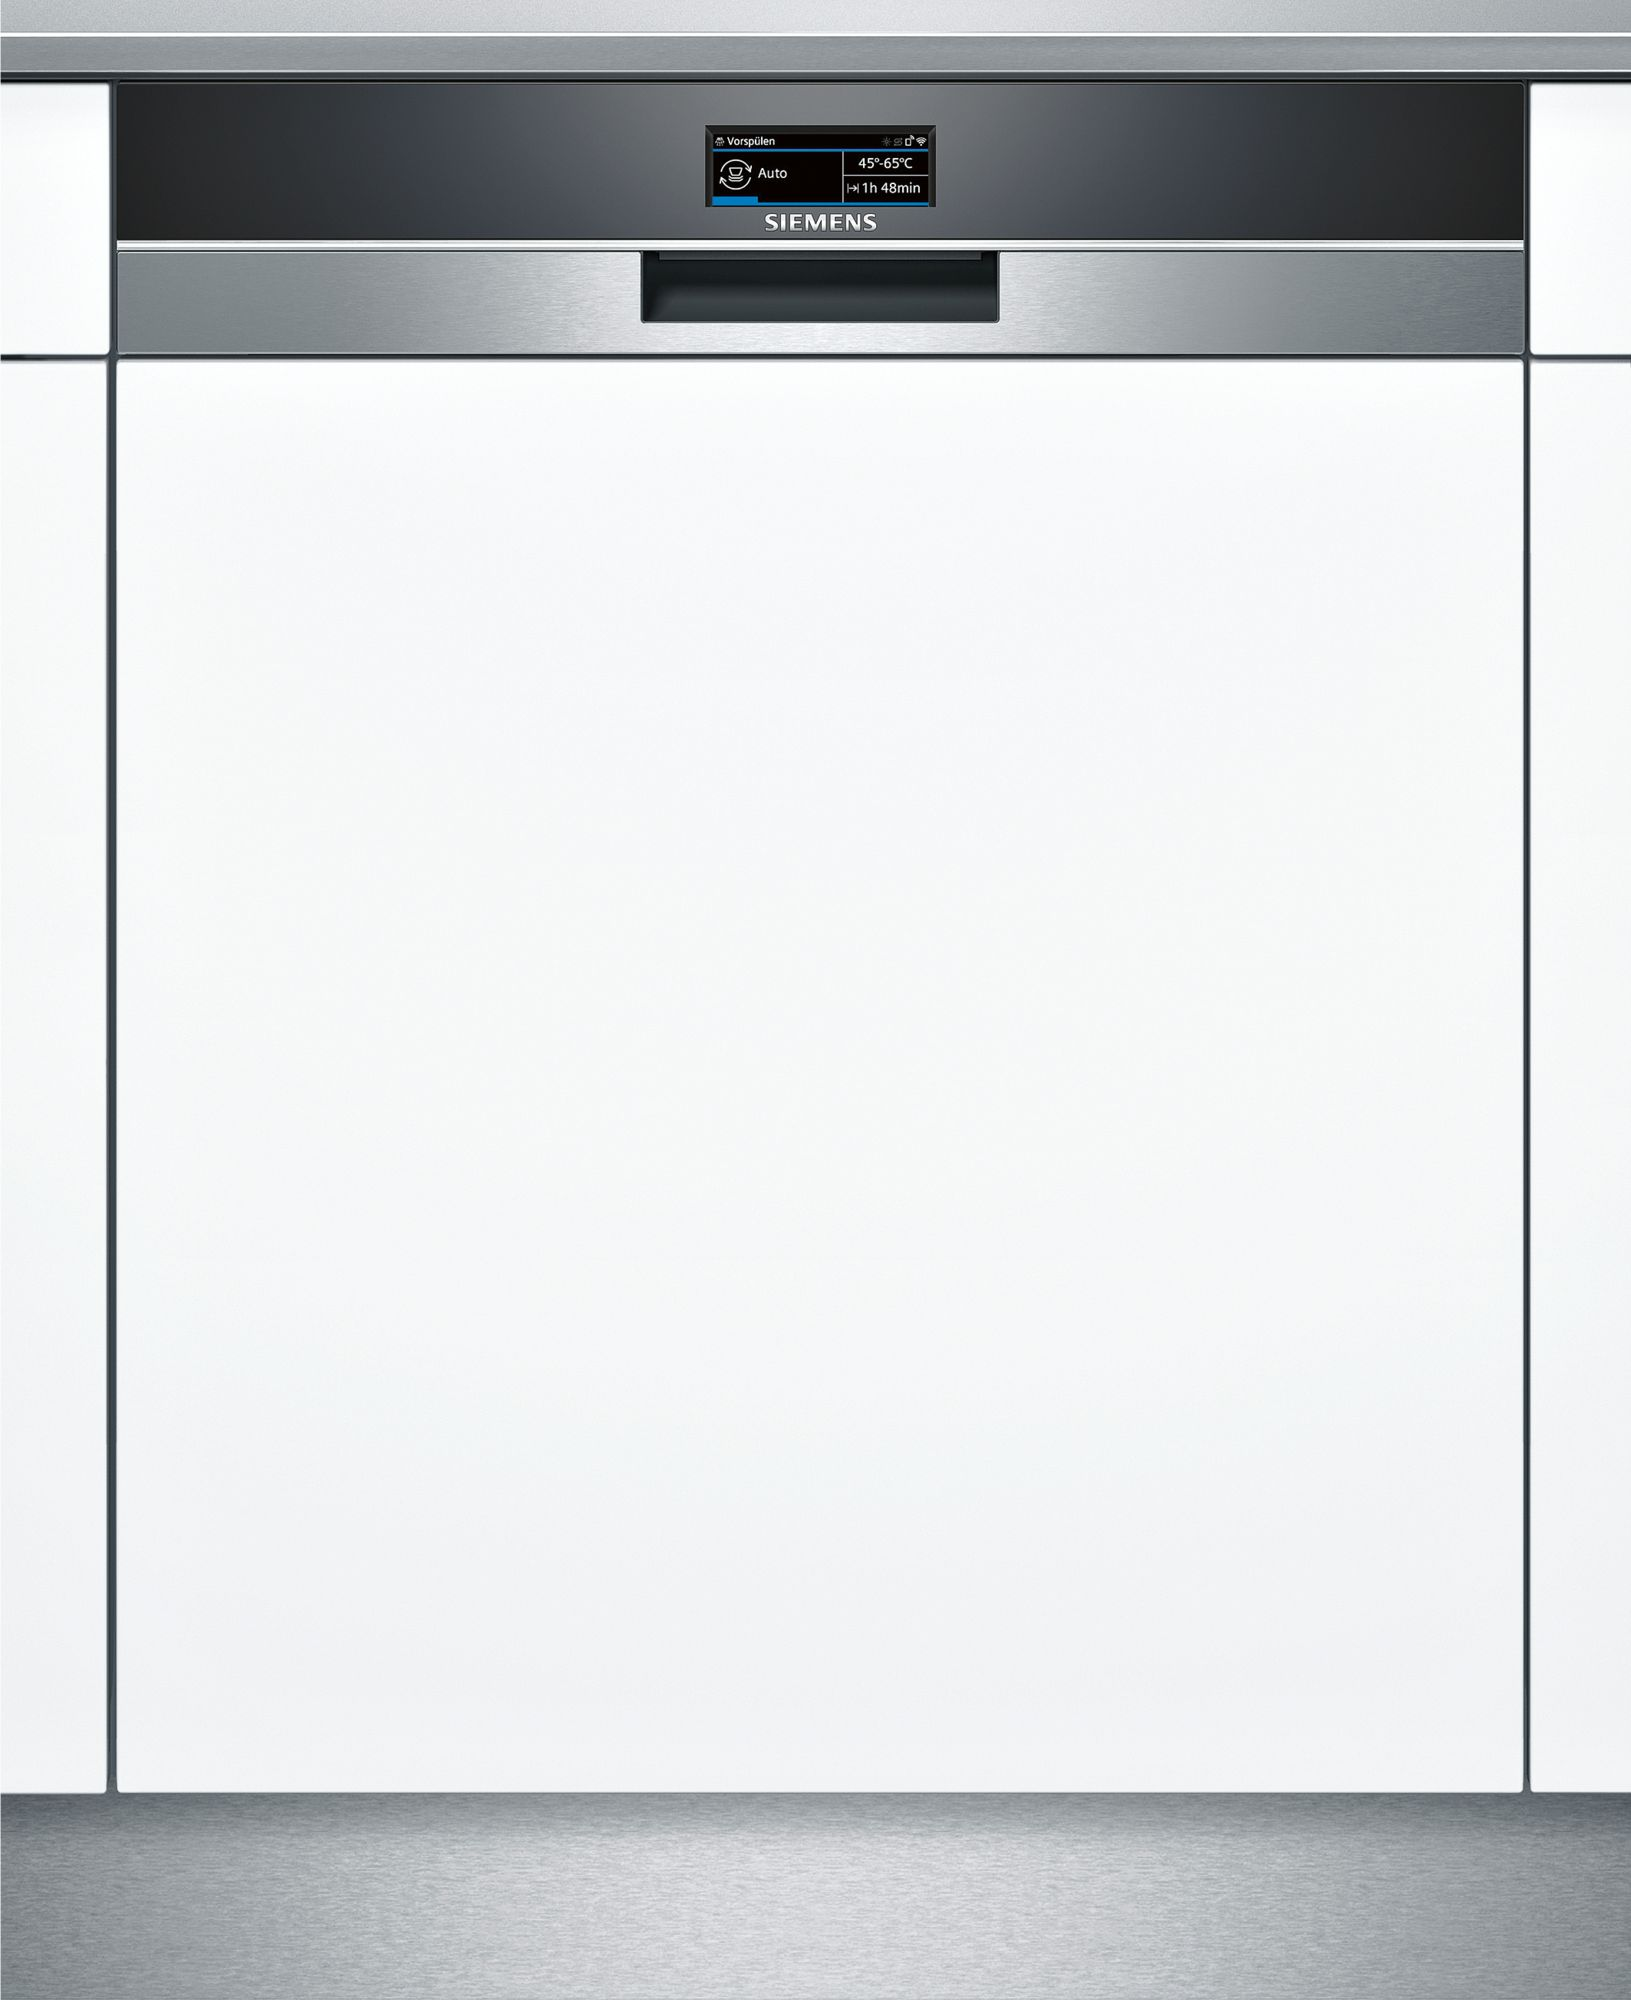 siemens - iq700 dishwasher 60cm, home connect wifi connectivity semi